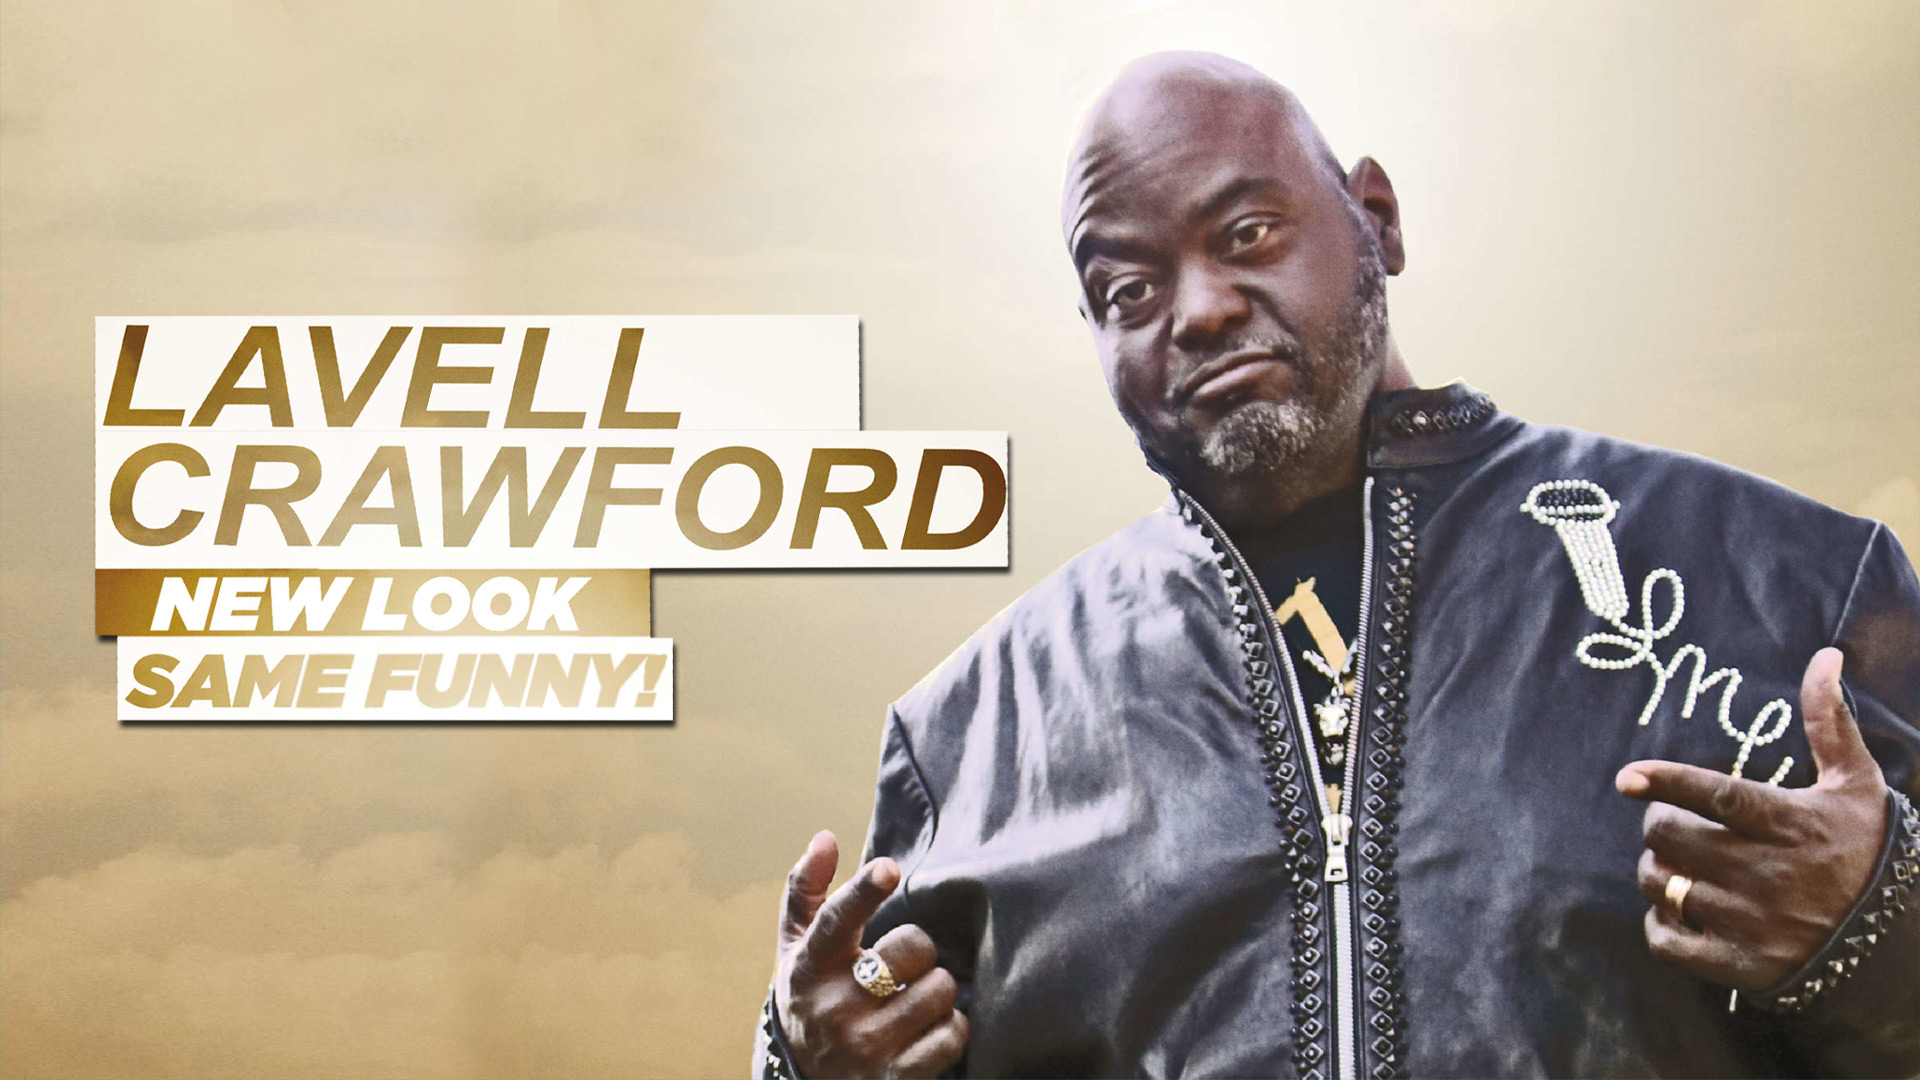 Lavell Crawford: New Look Same Funny!